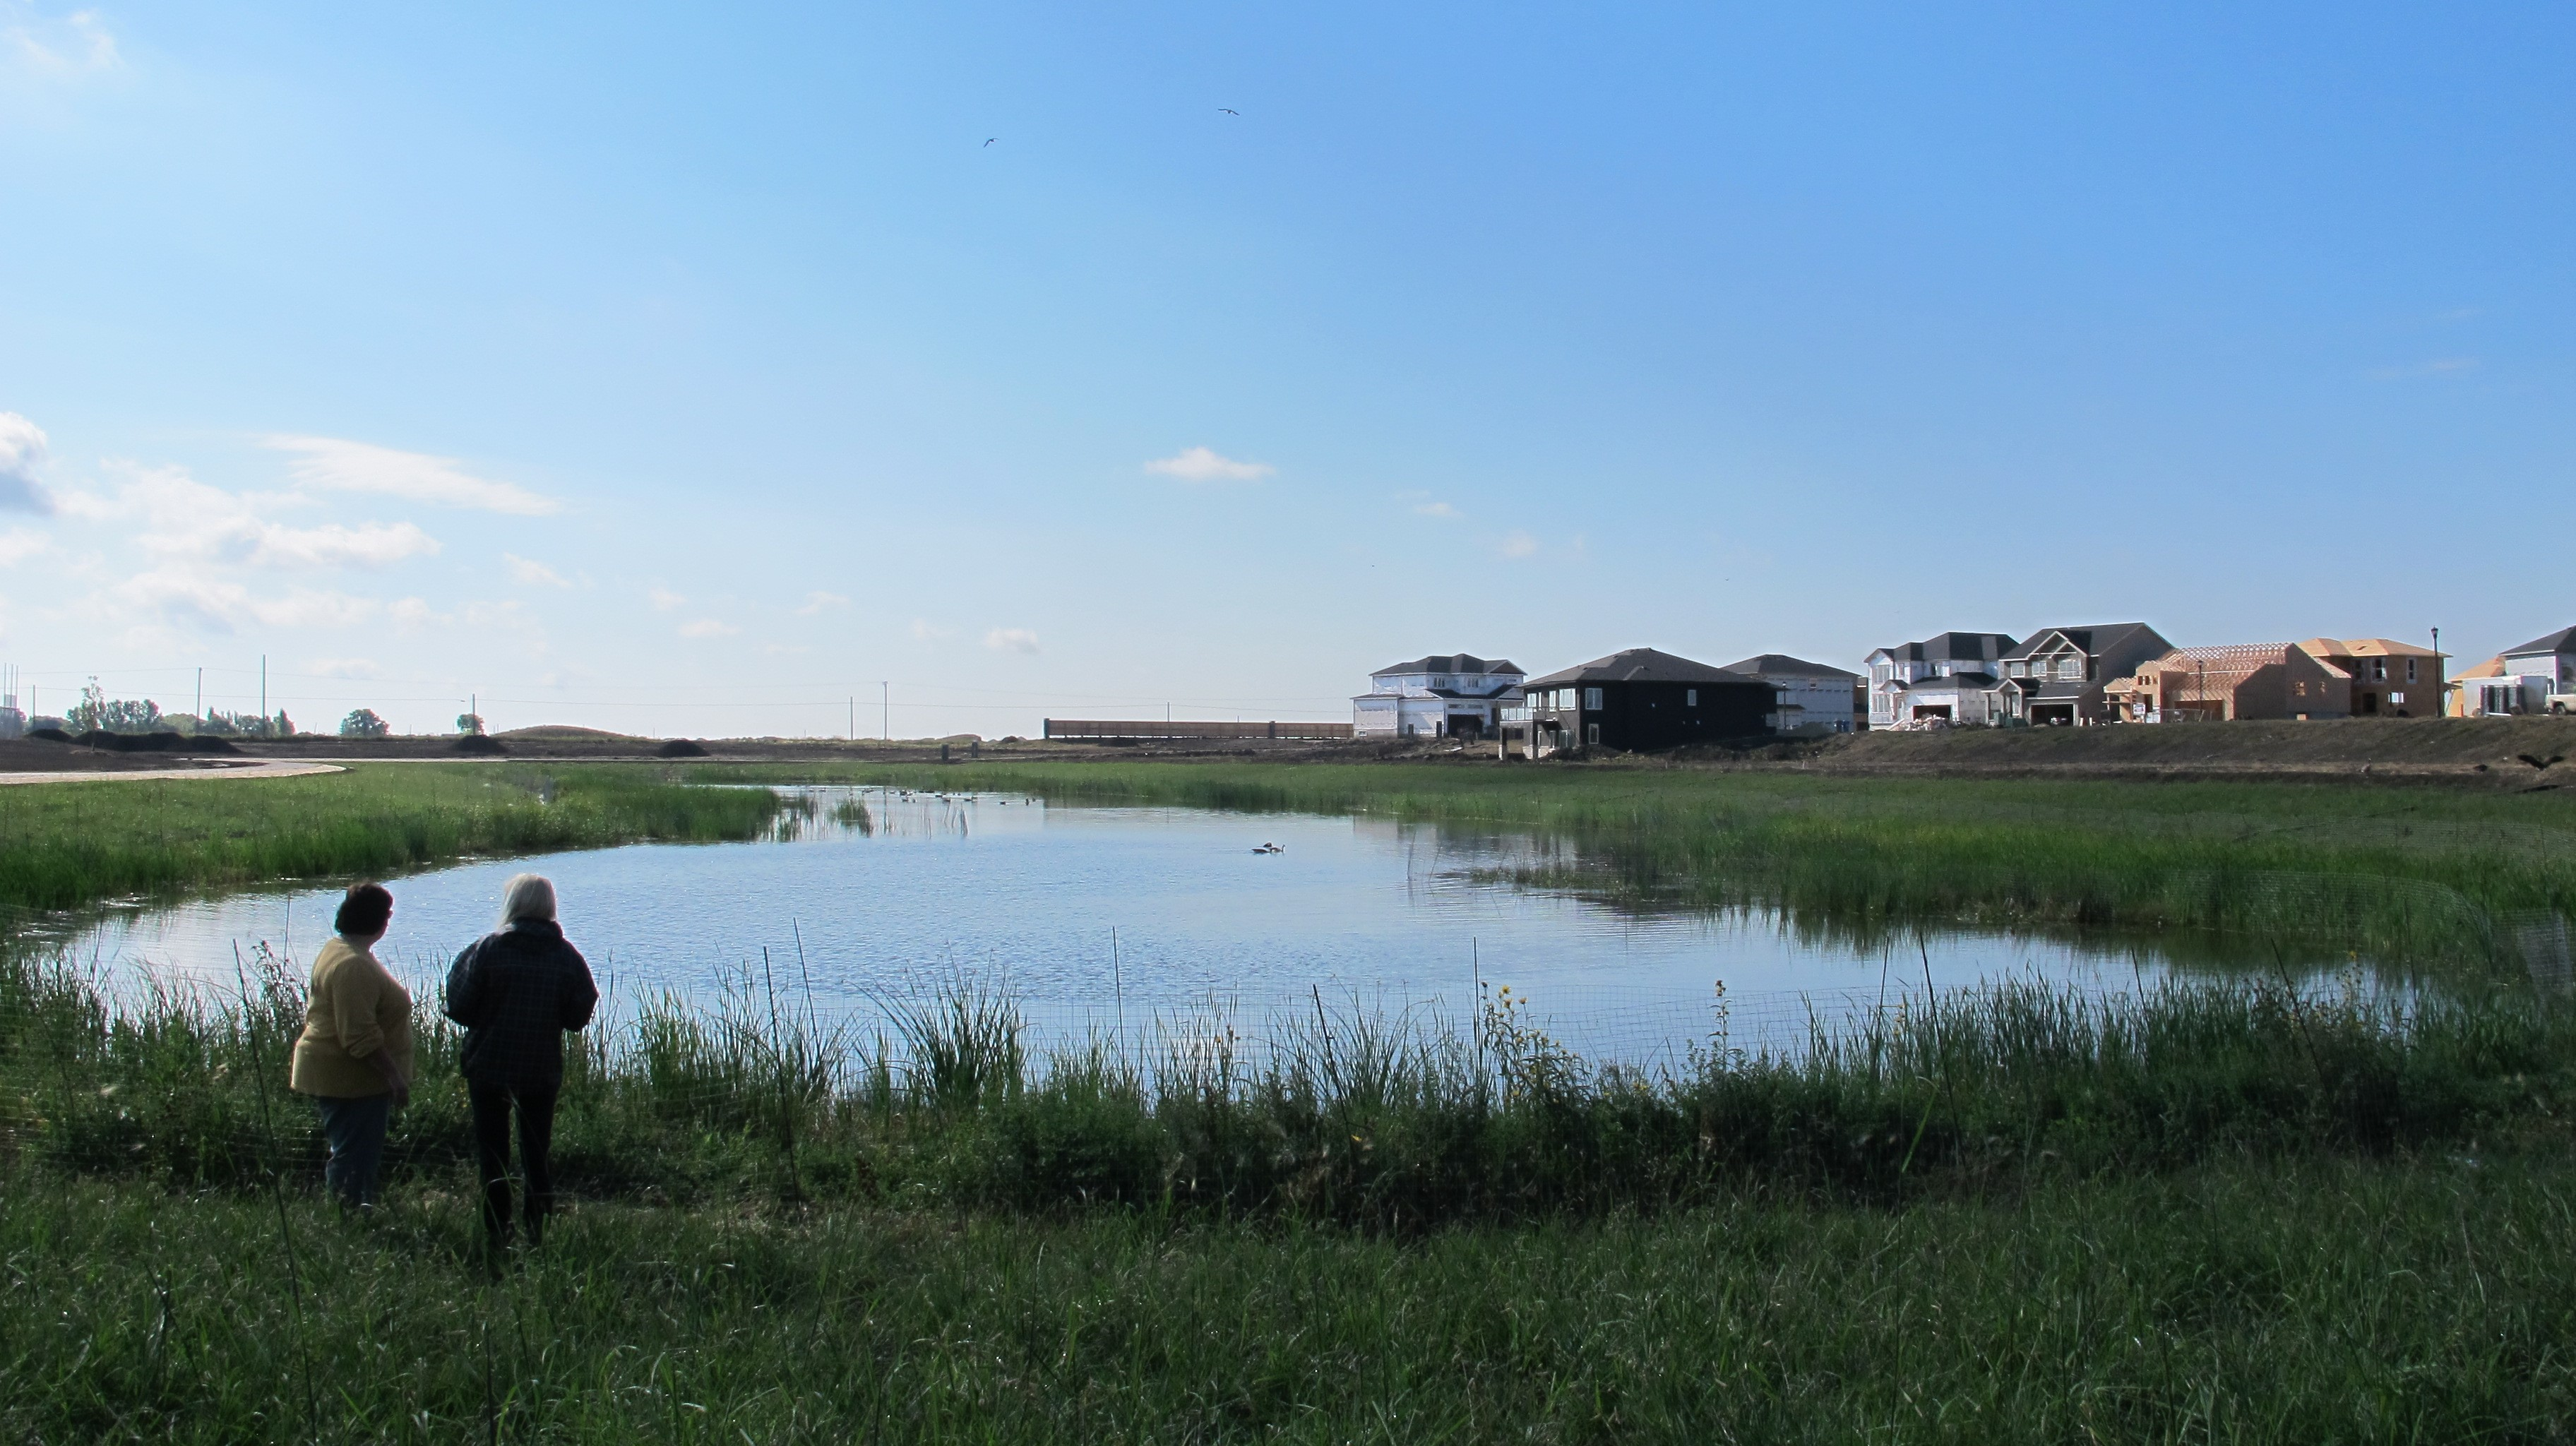 From bathtubs to wetlands